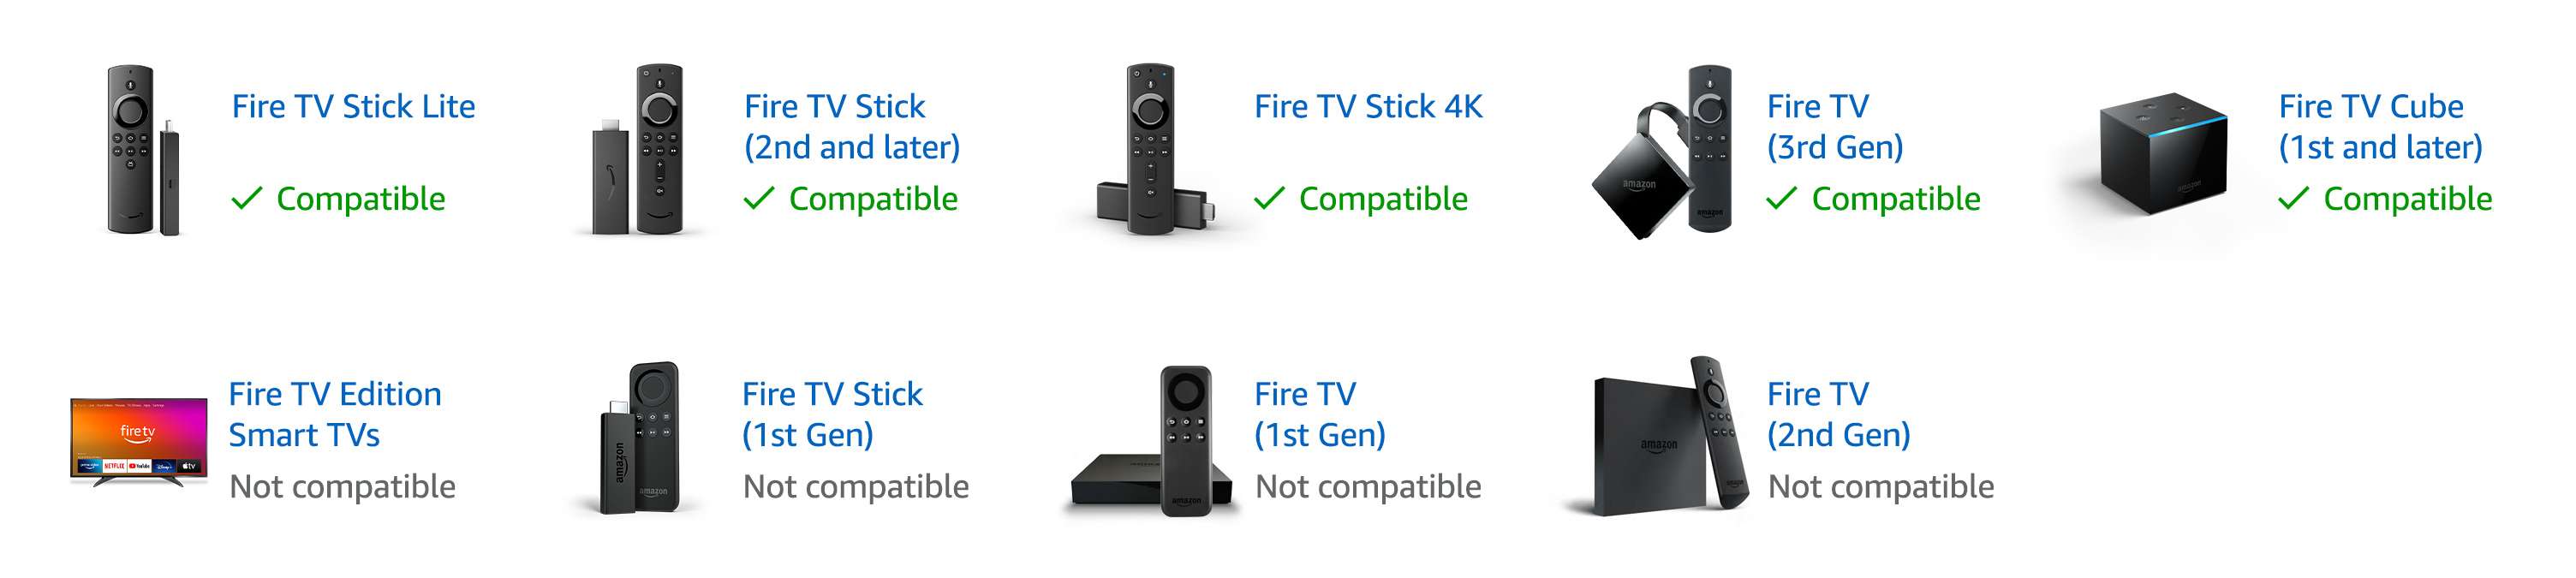 Fire TV compatibility with Alexa Voice Remote (3rd Gen)